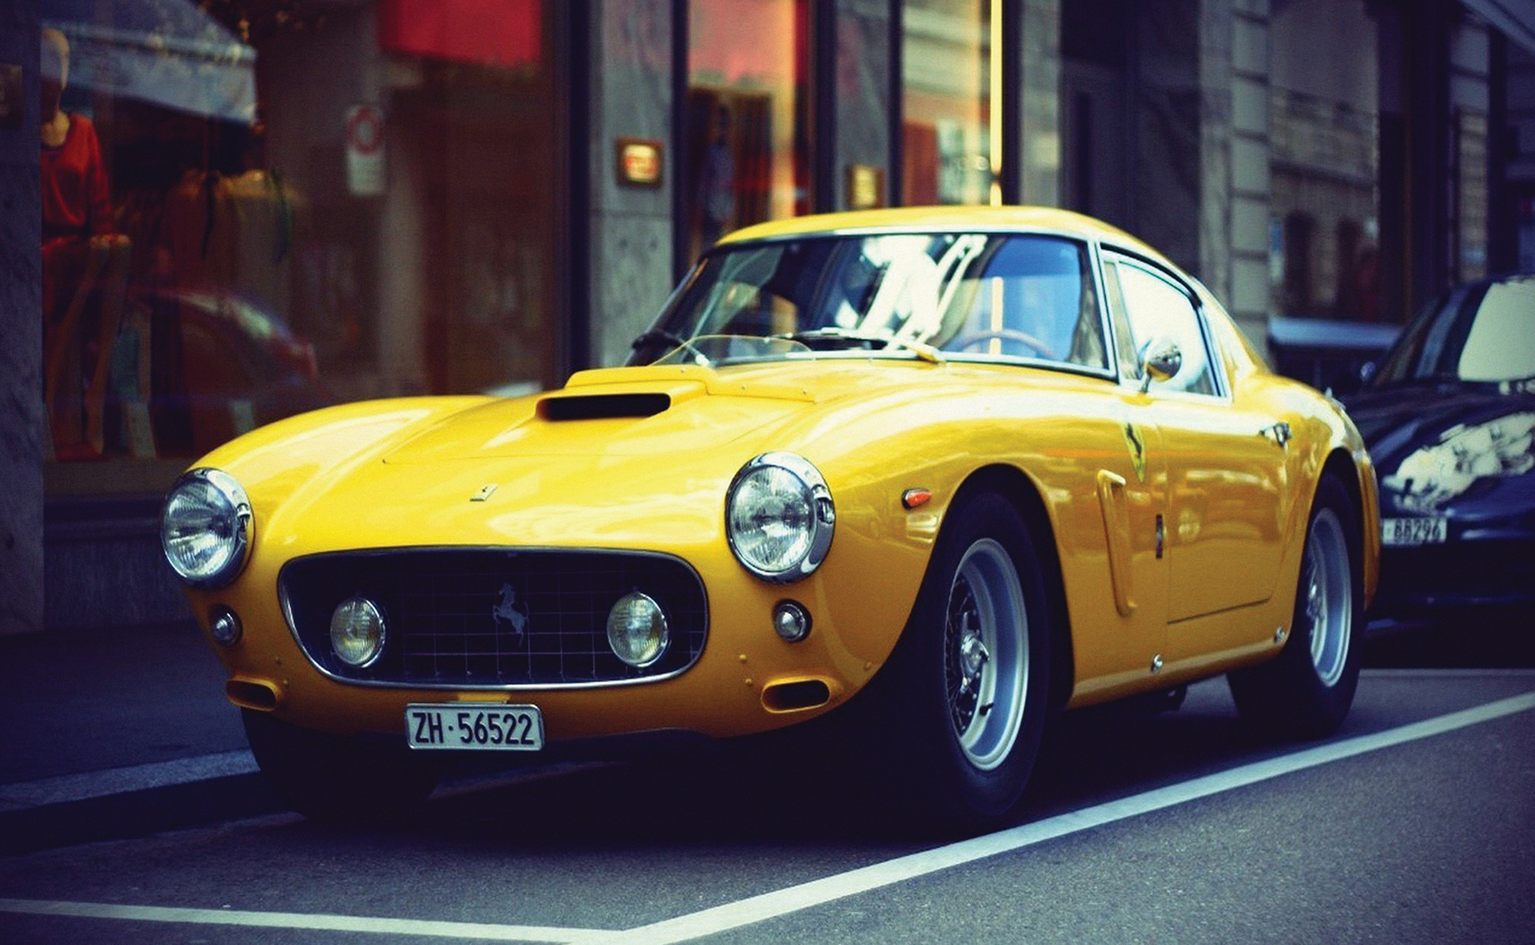 VINTAGE FERRARI 250 GT BERLINETTA CLASSIC CAR WALL ART - wallart.london